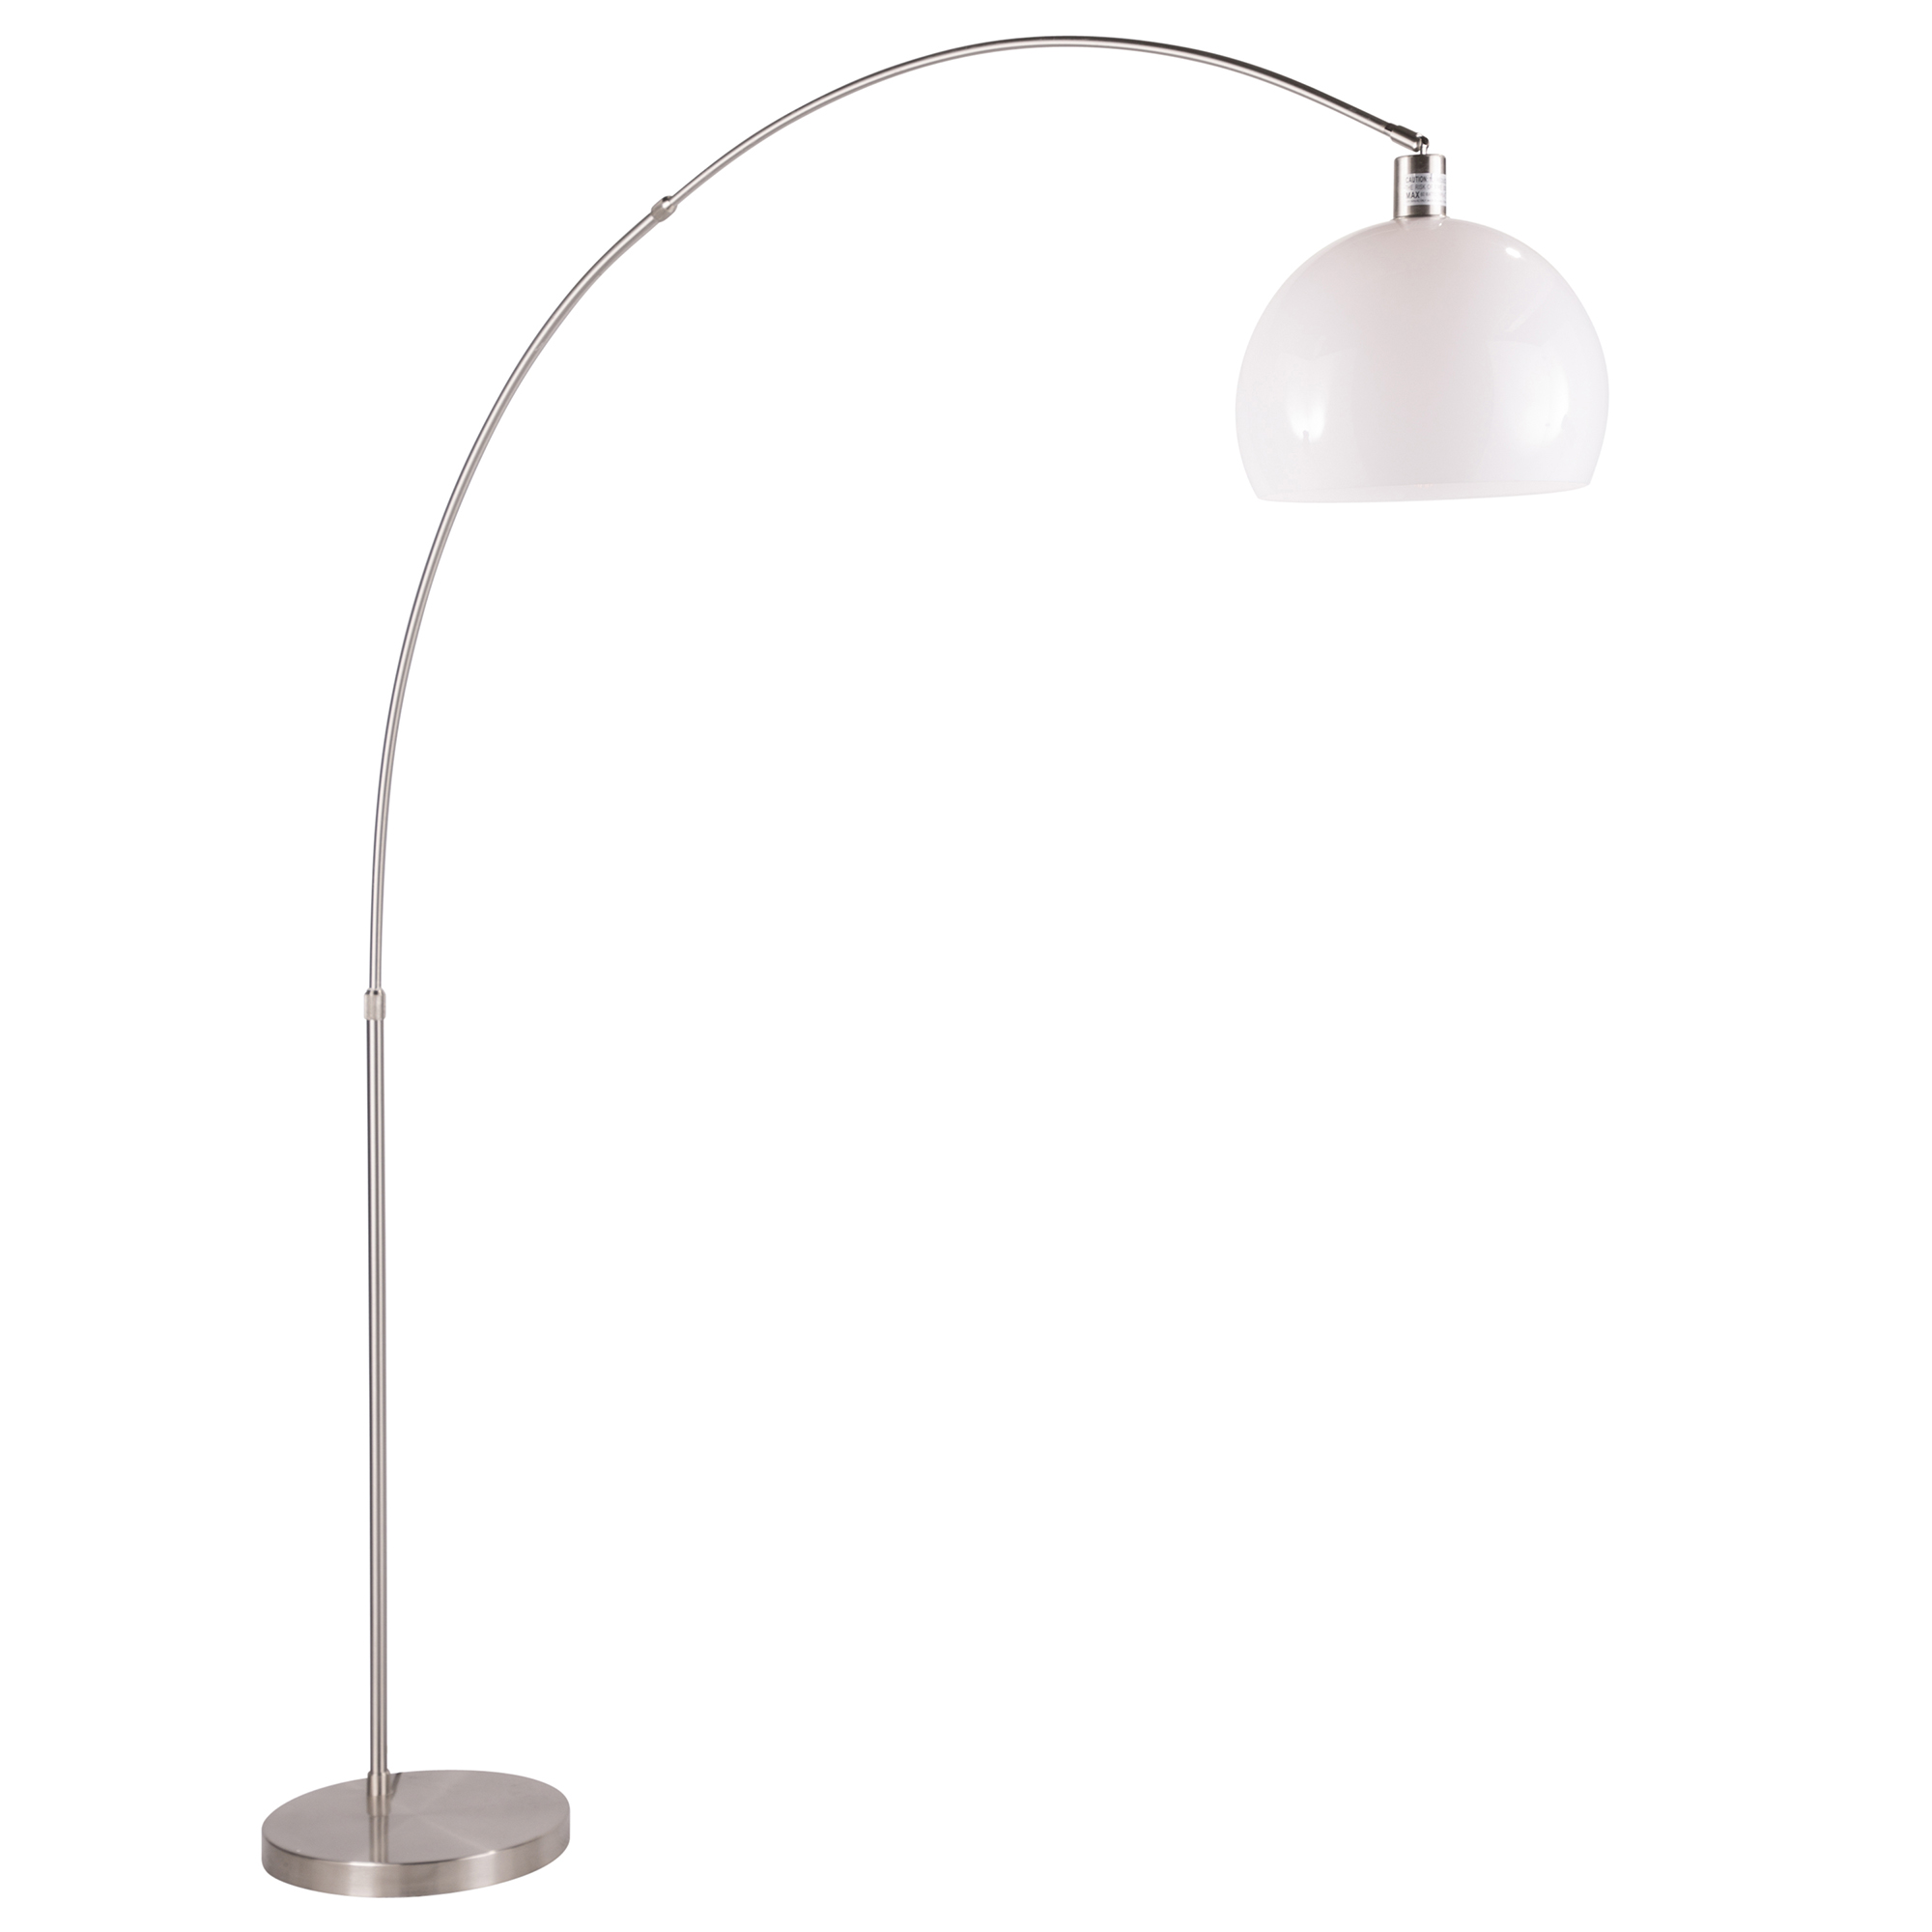 Decco Modern Arched Floor Lamp In Satin Nickel With White Shade By Lumisource